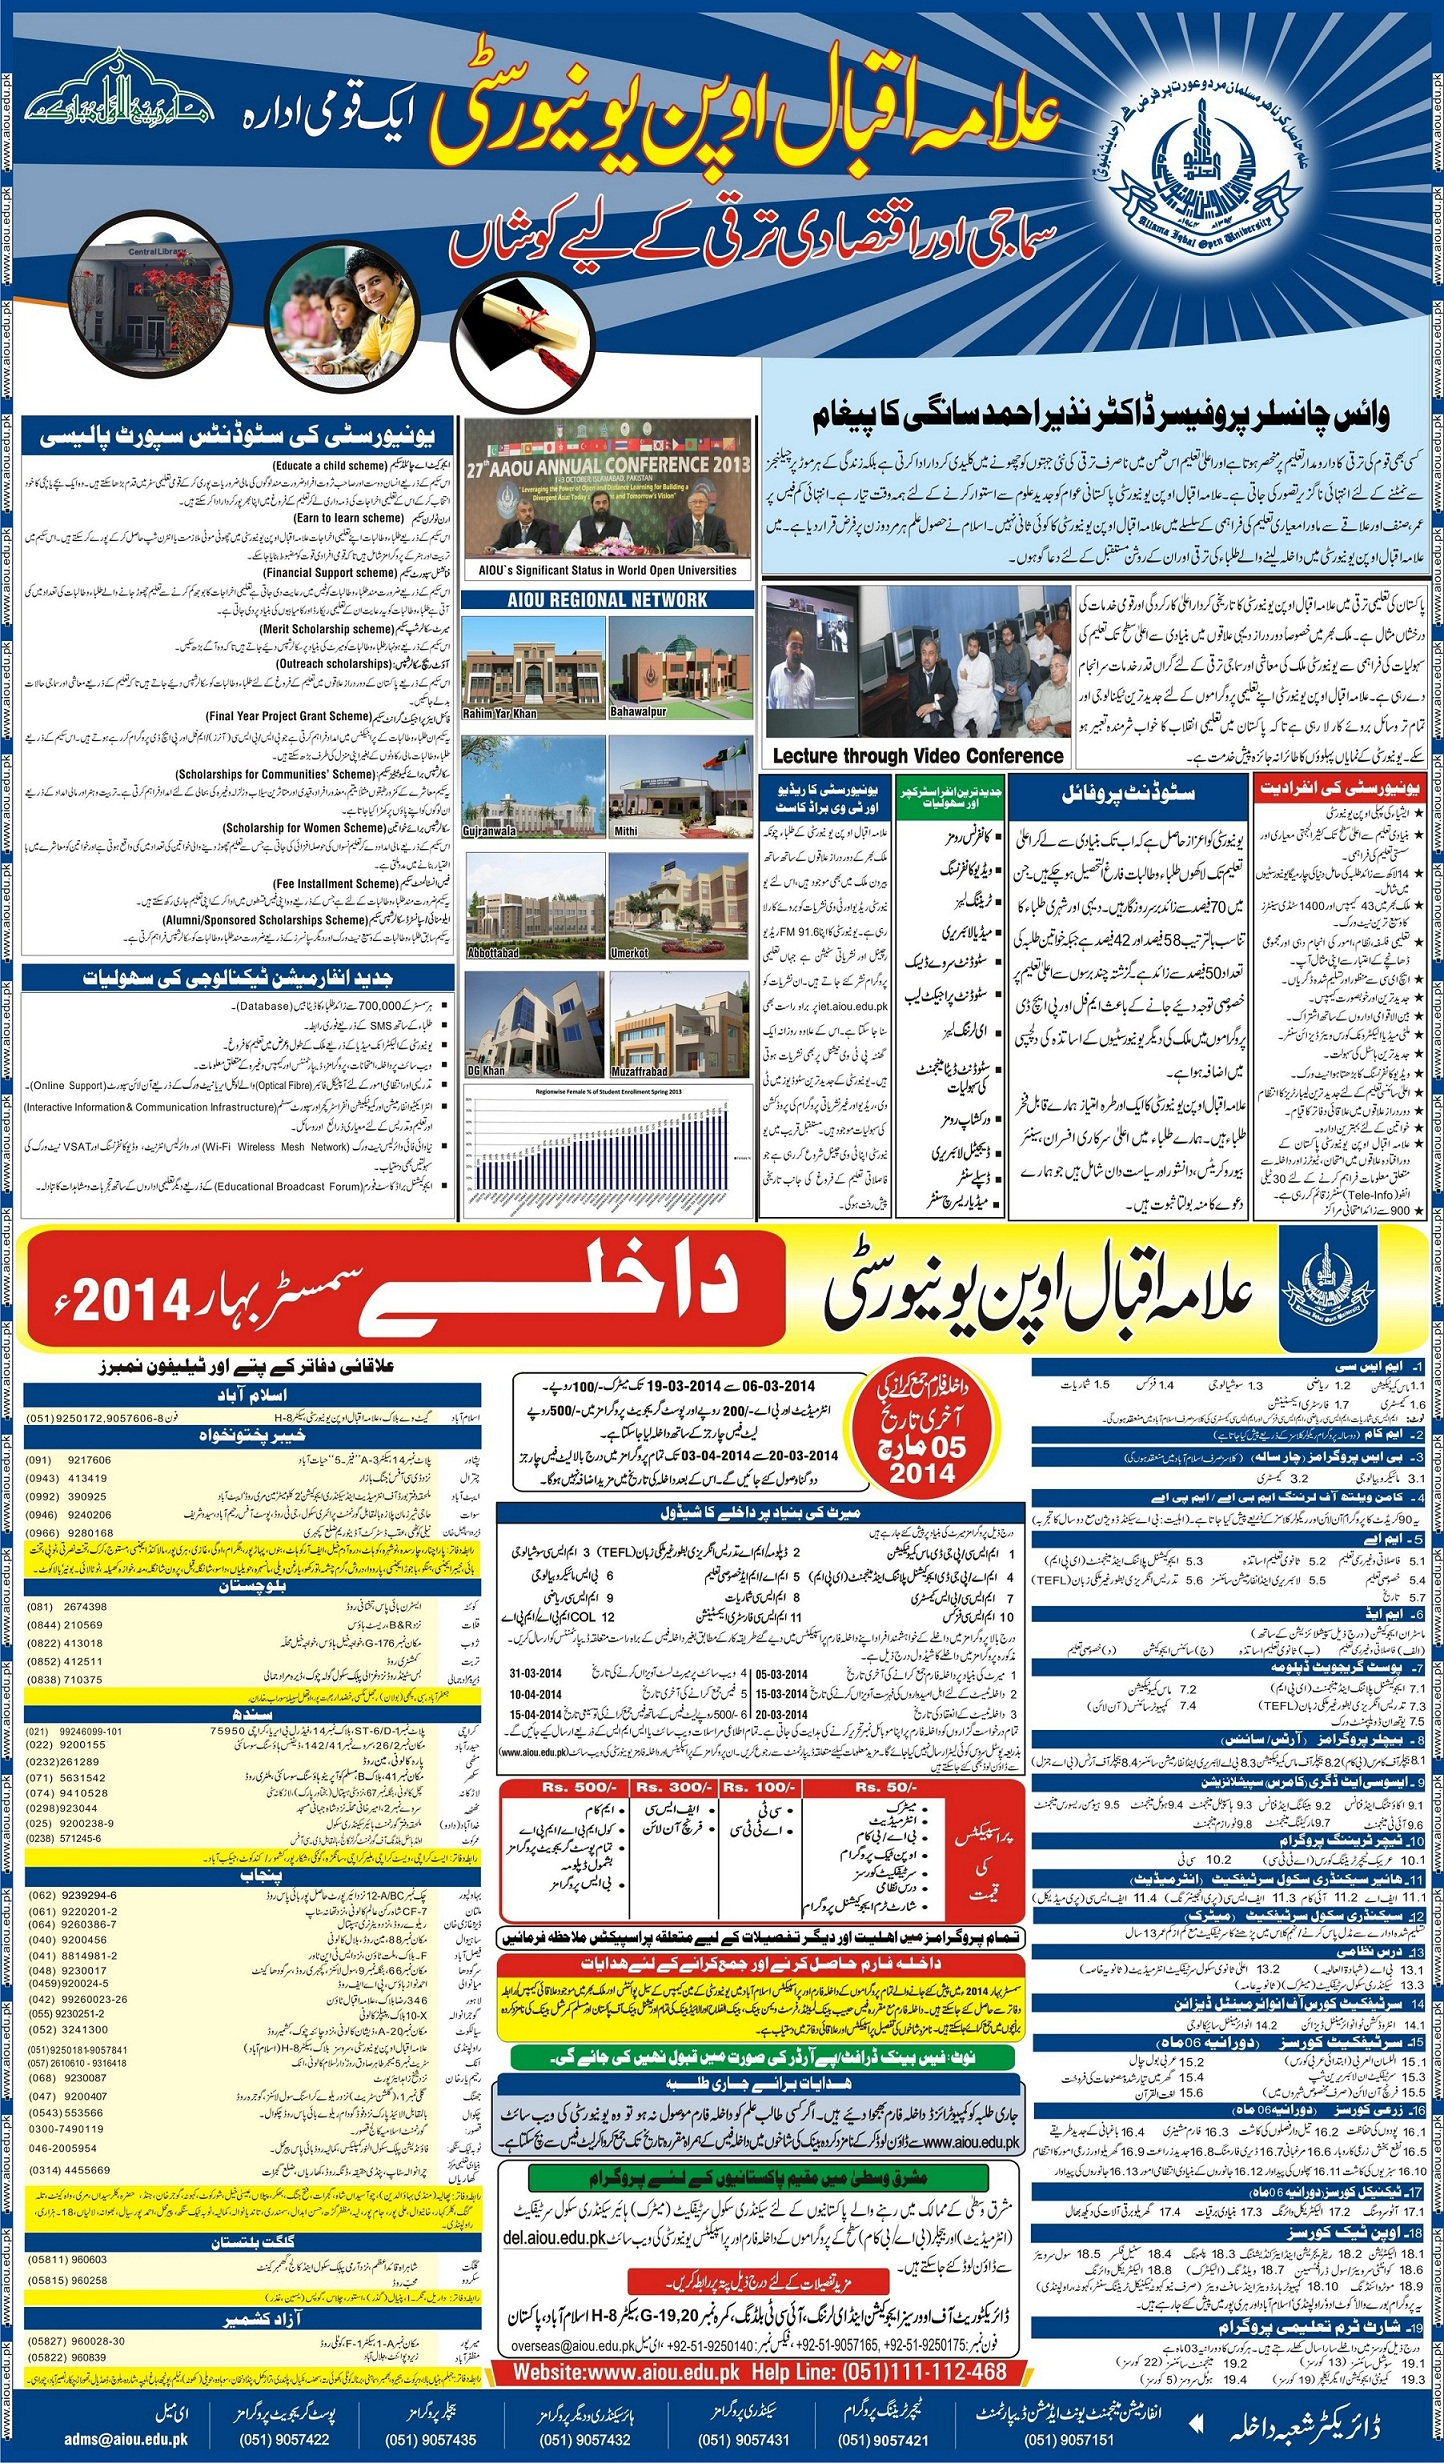 Allama iqbal Open University AIOU Spring admission 2014